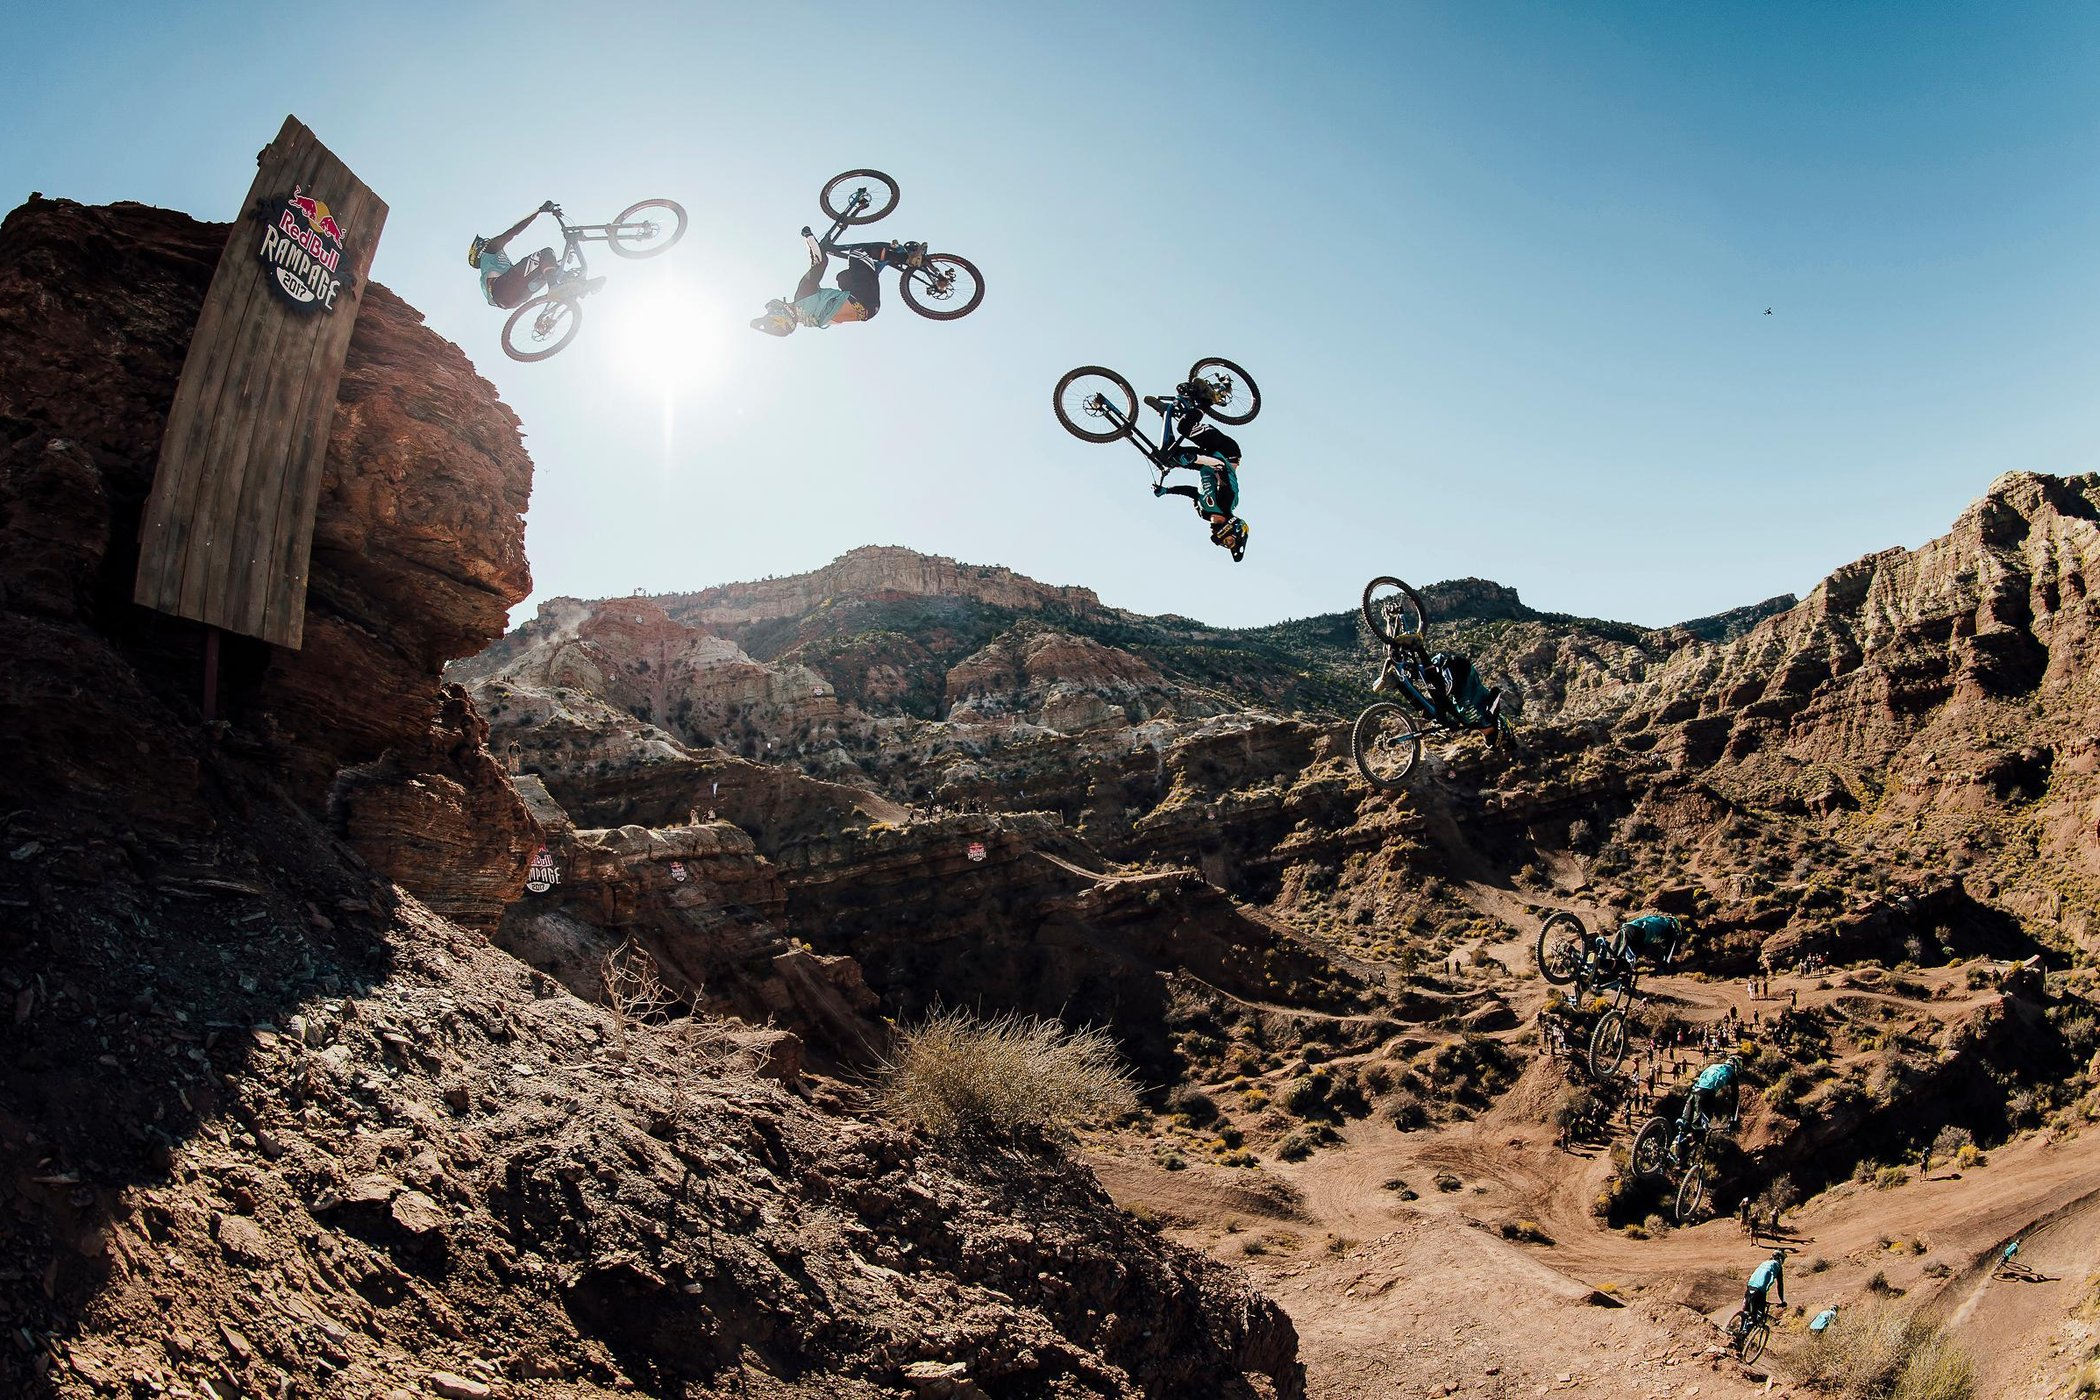 Red Bull Rampage >> How To Watch Red Bull Rampage 2018 Mountain Biking Live